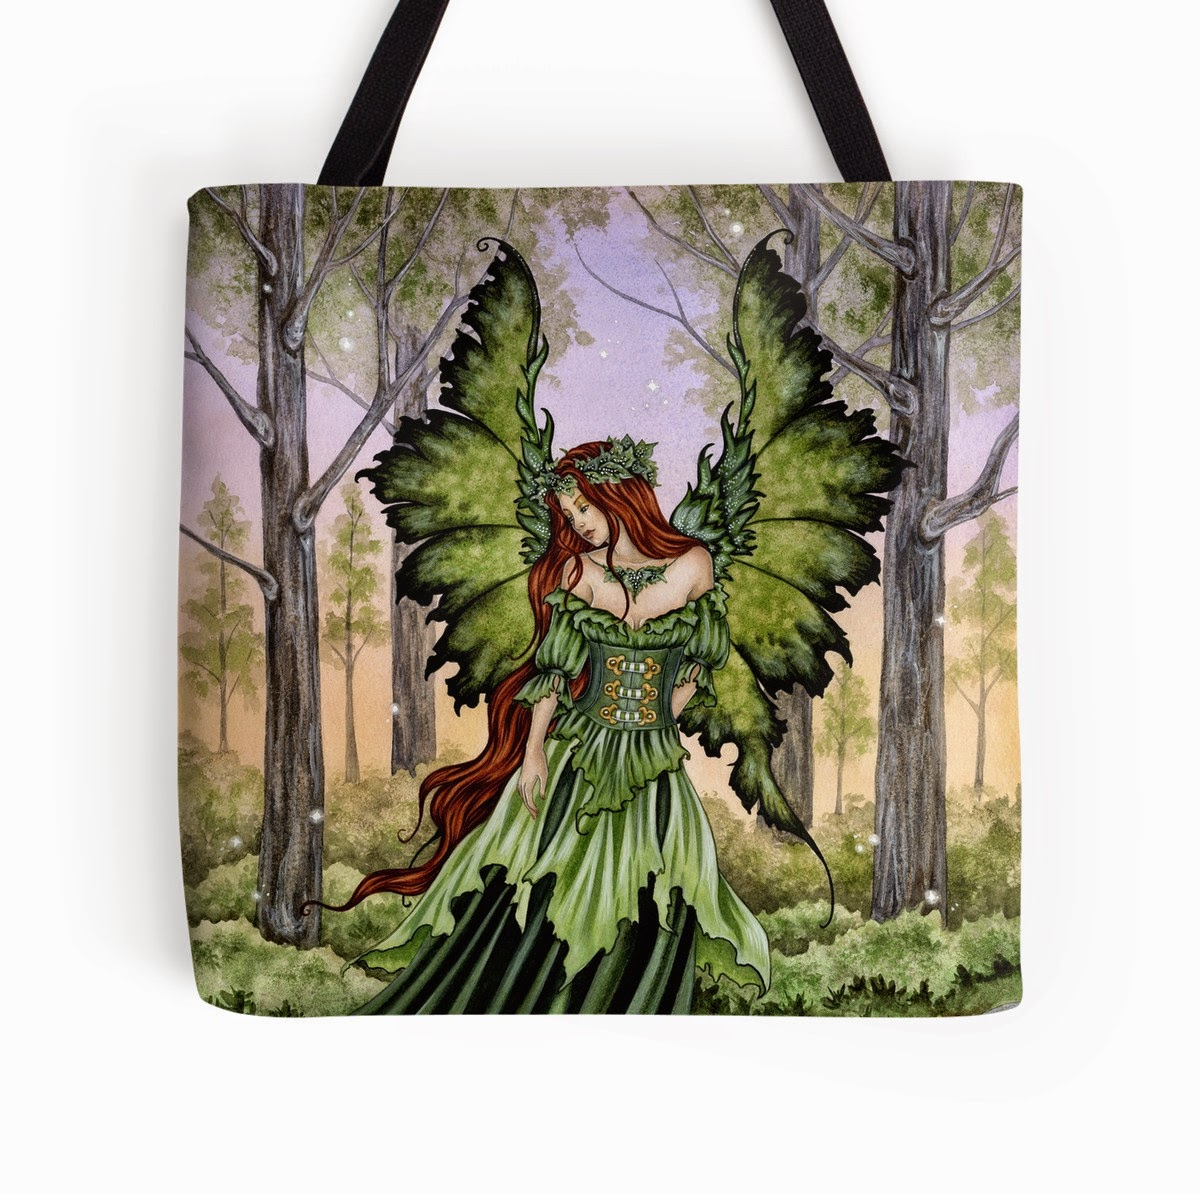 Amy Brown's Redbubble store